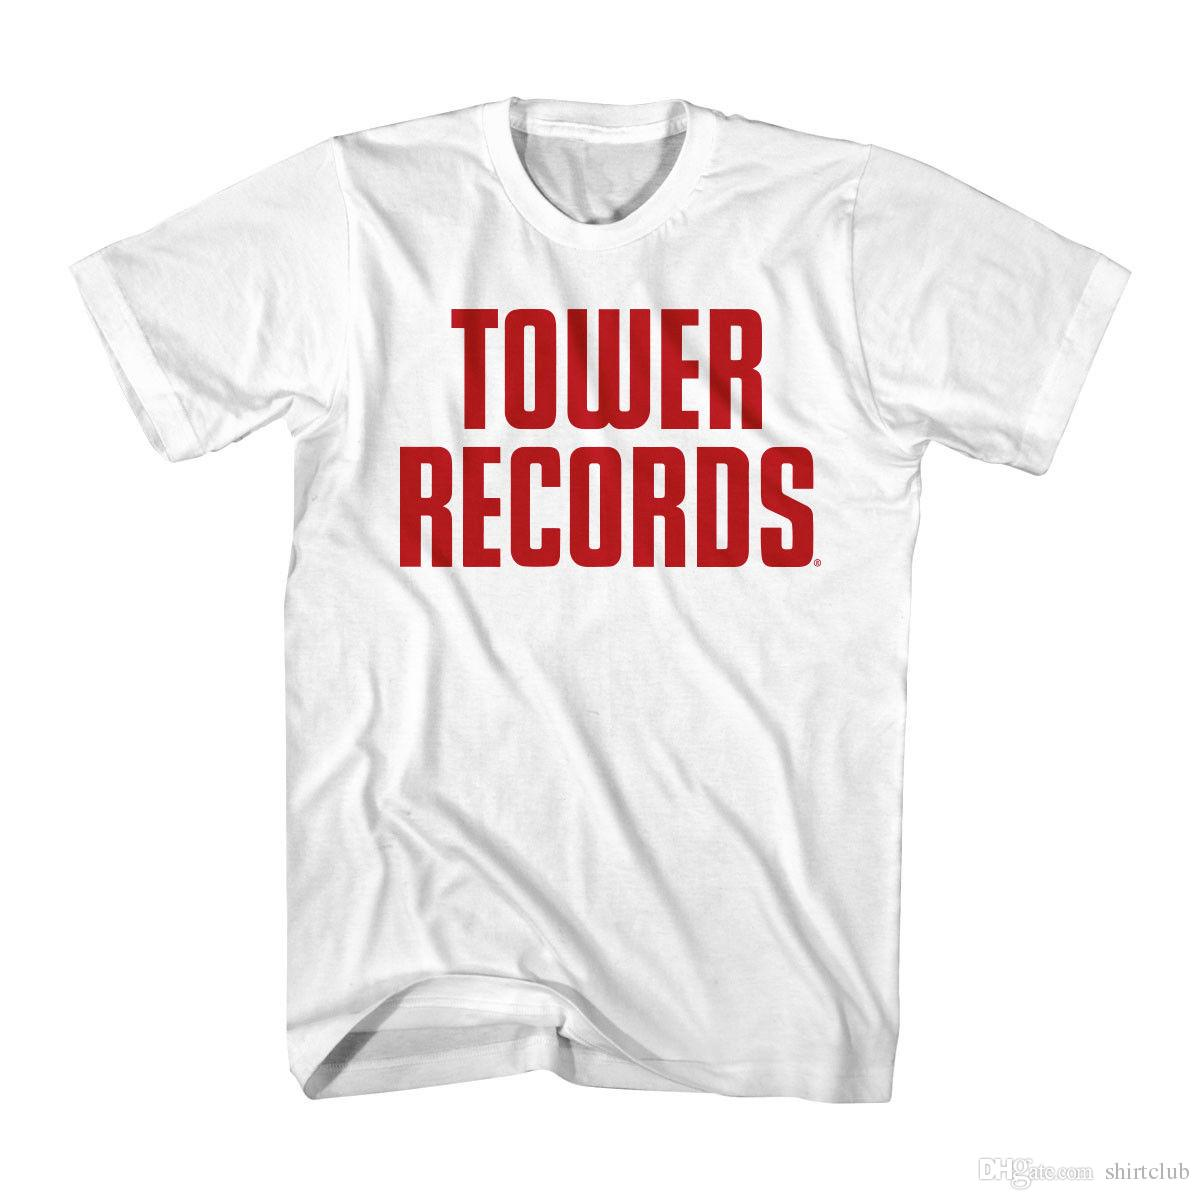 af9f110d Tower Records Music Franchise Big Letter Logo Adult T Shirt T Shirt Men  Man'S Fabulous Short Sleeve Cotton Custom Plus Size Couple T Shirts For  Sale Printed ...